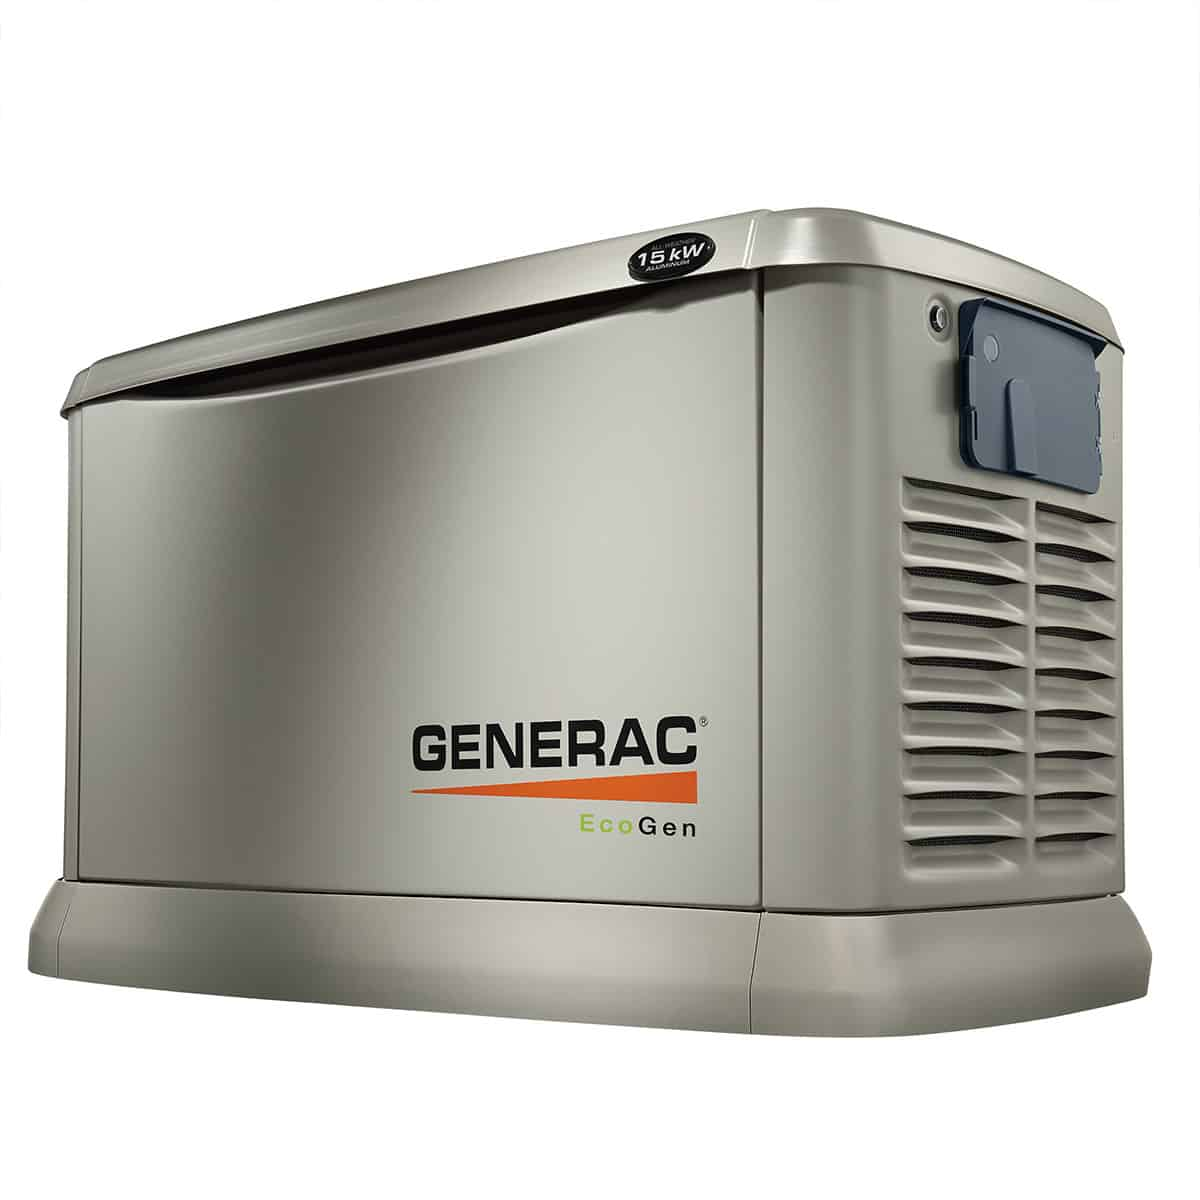 Generac 15kW NG/LP Air Cooled EcoGen Standby Generator | 6103